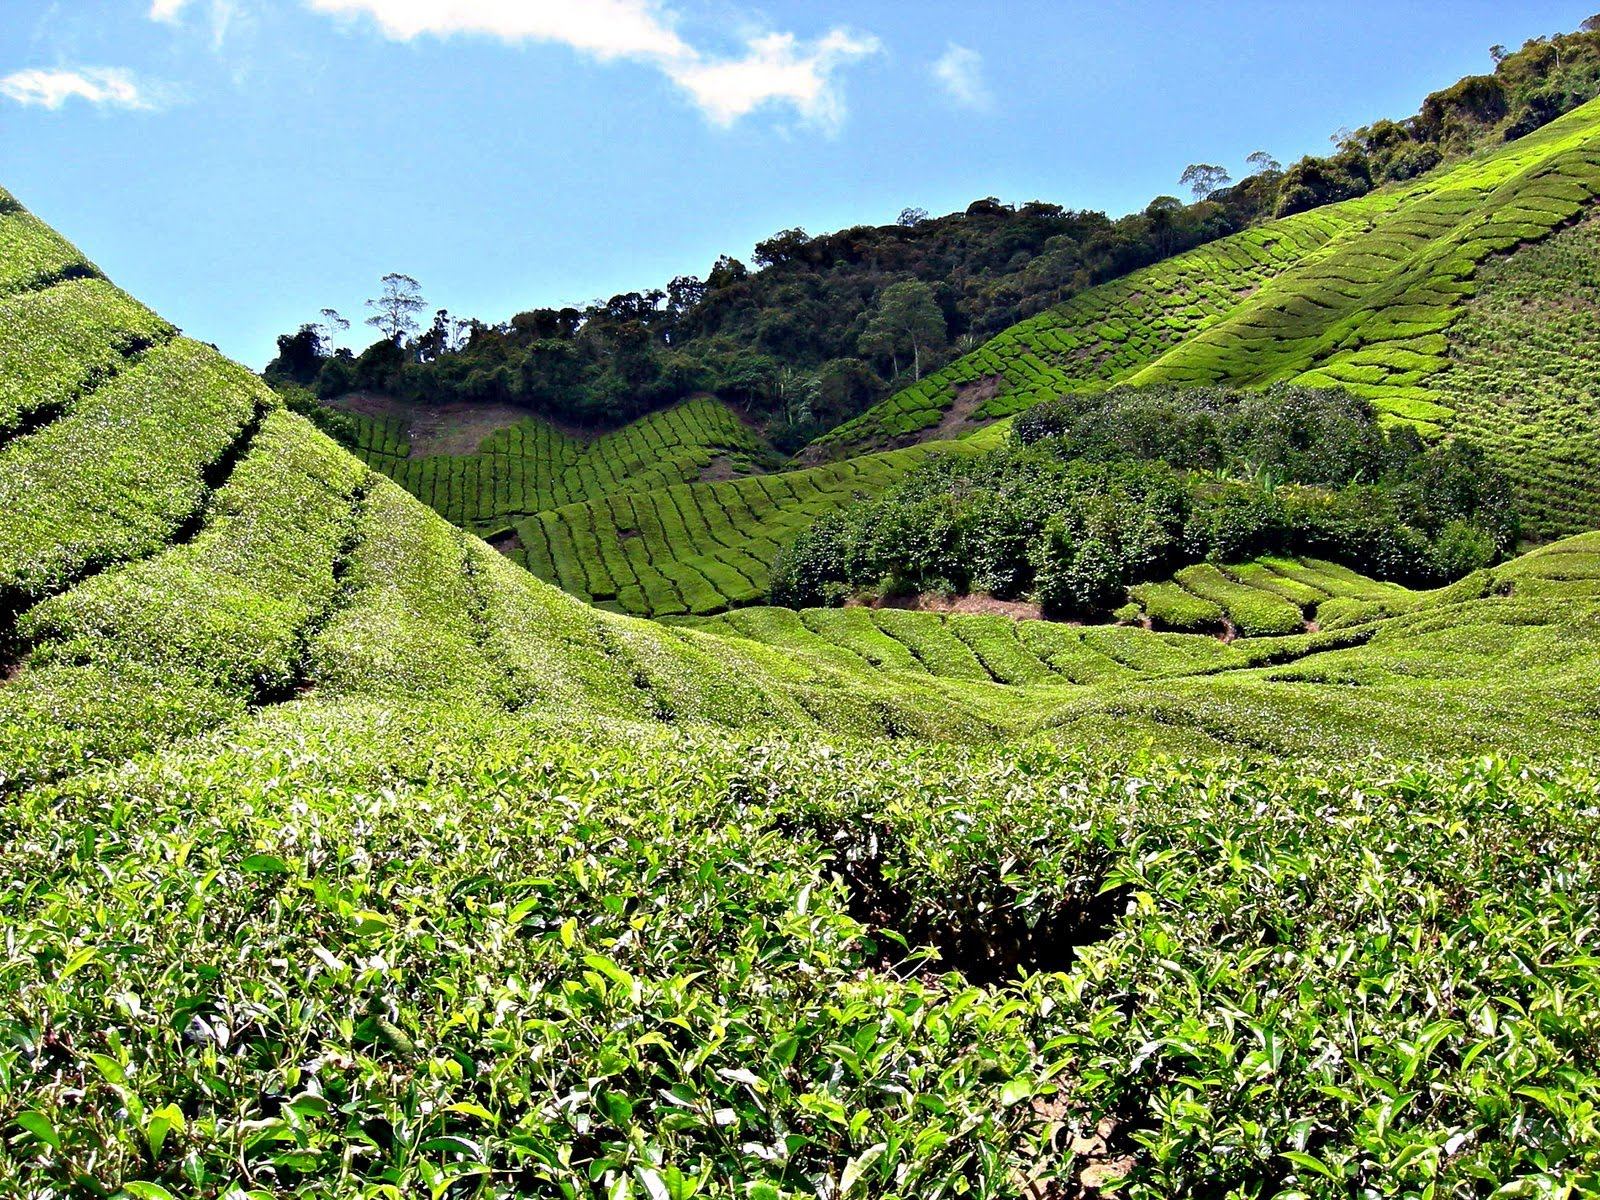 trip and tea plantations So there you have it a quick tour of the tea plantations at maokong if you want a break from the noise of the city, then a day trip to maokong is highly recommended.